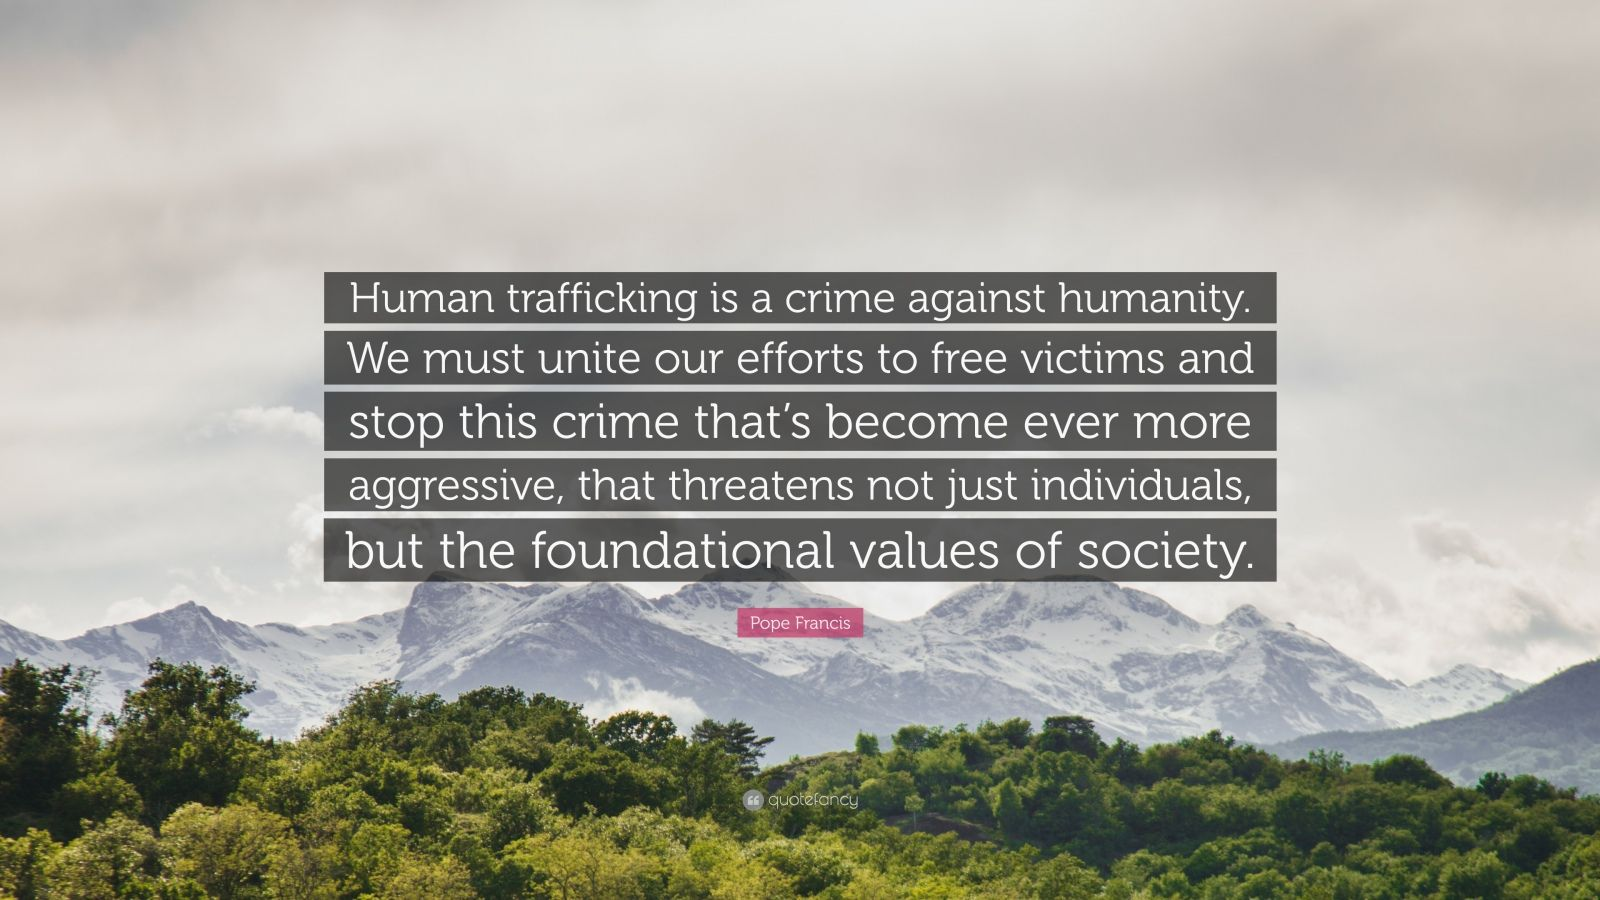 """Pope Francis Quote: """"Human trafficking is a crime against humanity. We must unite our efforts to free victims and stop this crime that's become ever more aggressive, that threatens not just individuals, but the foundational values of society."""""""